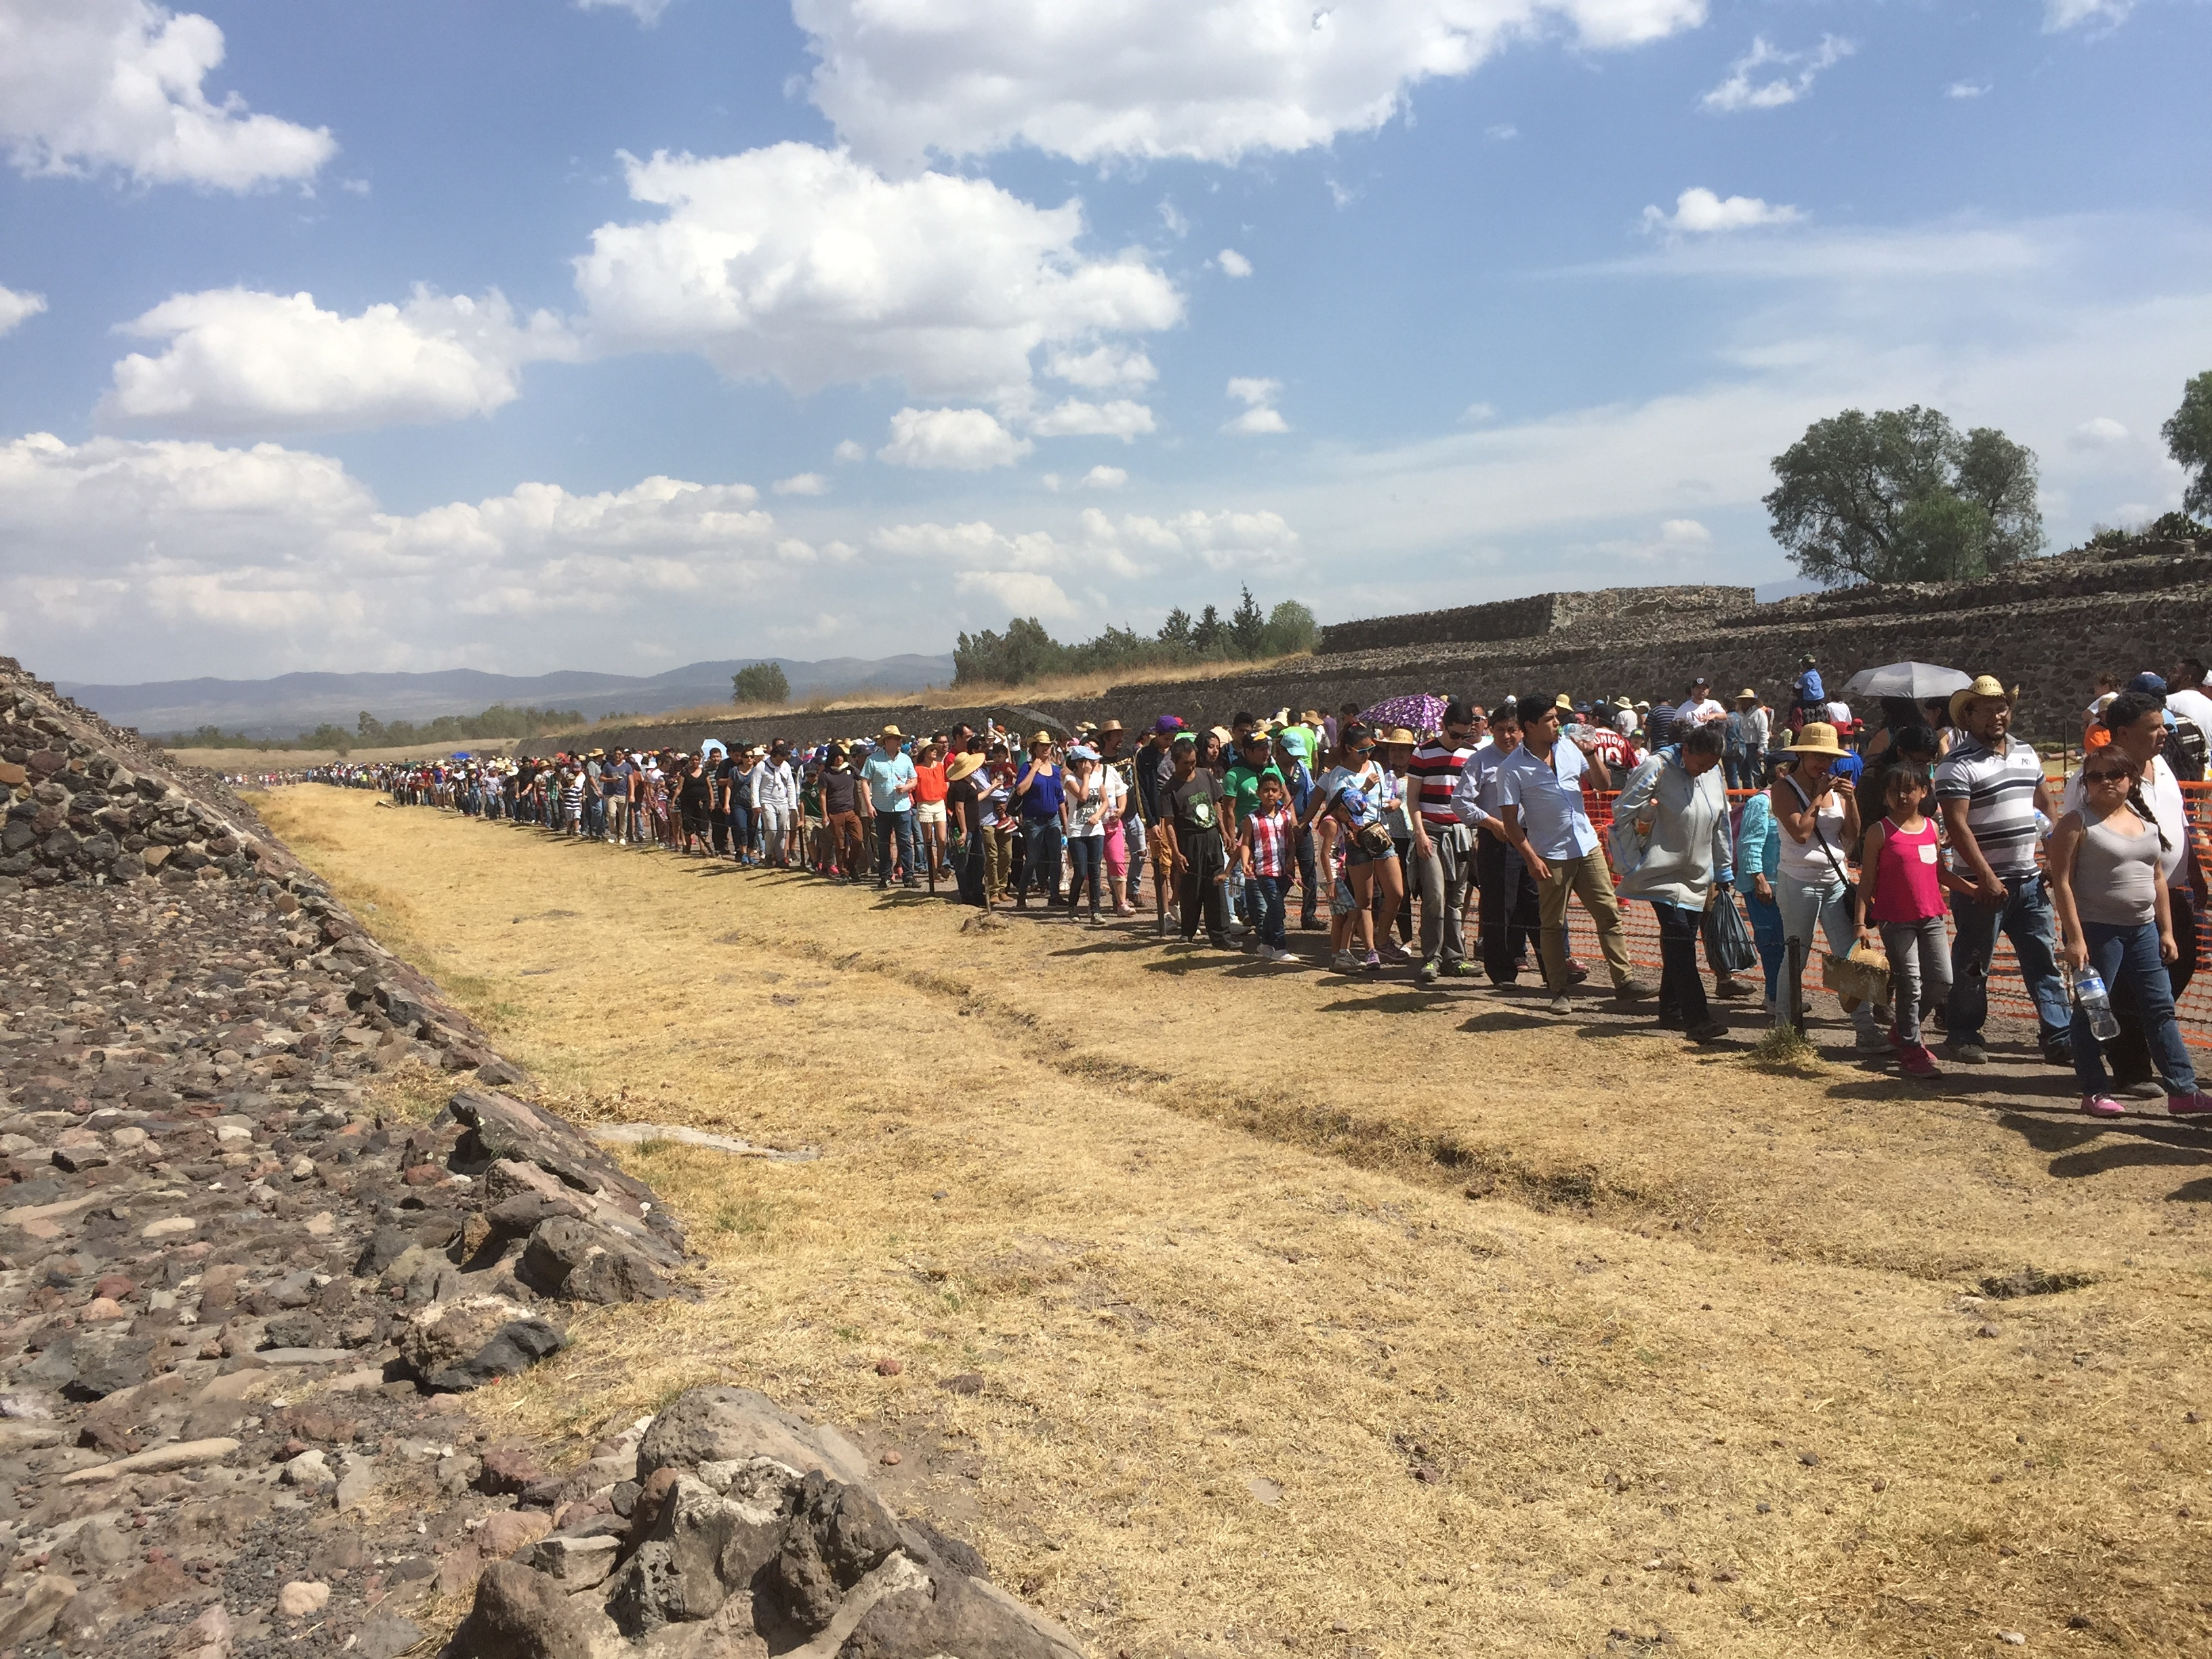 Tourists wait in line to climb the pyramid of the sun in teotihuacan.